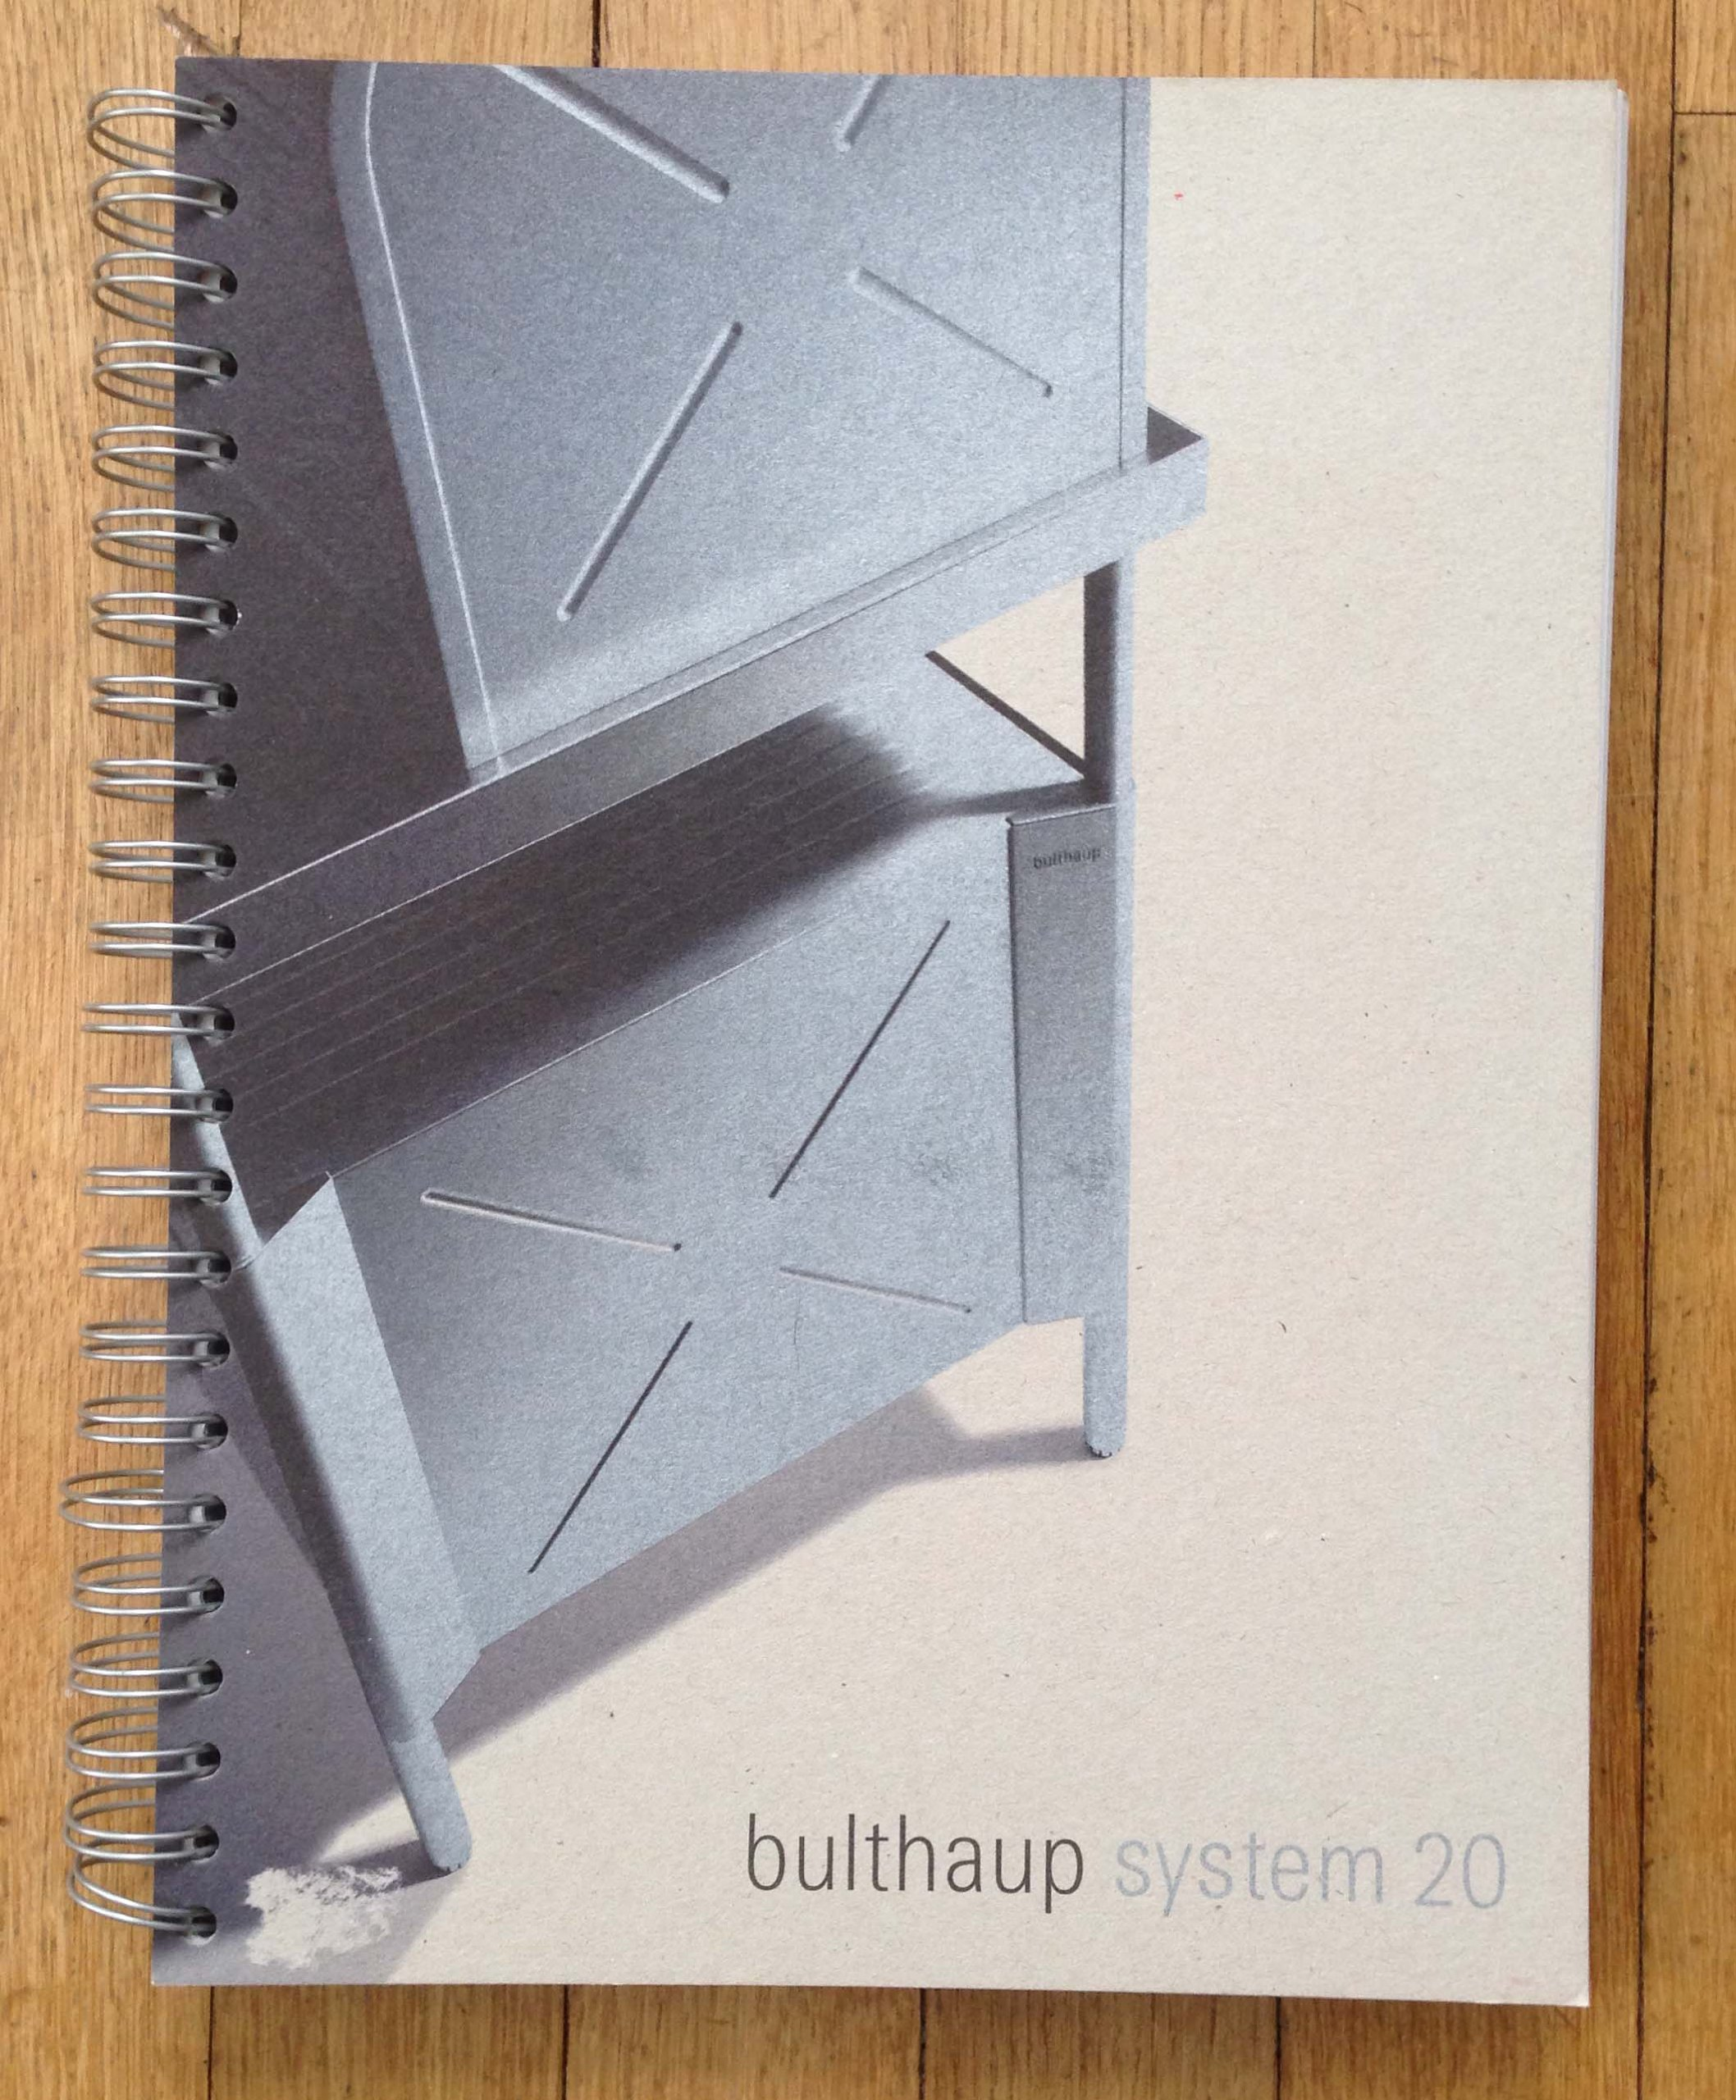 Bulthaup System 20 Amazon Co Uk Claus A Froh Books